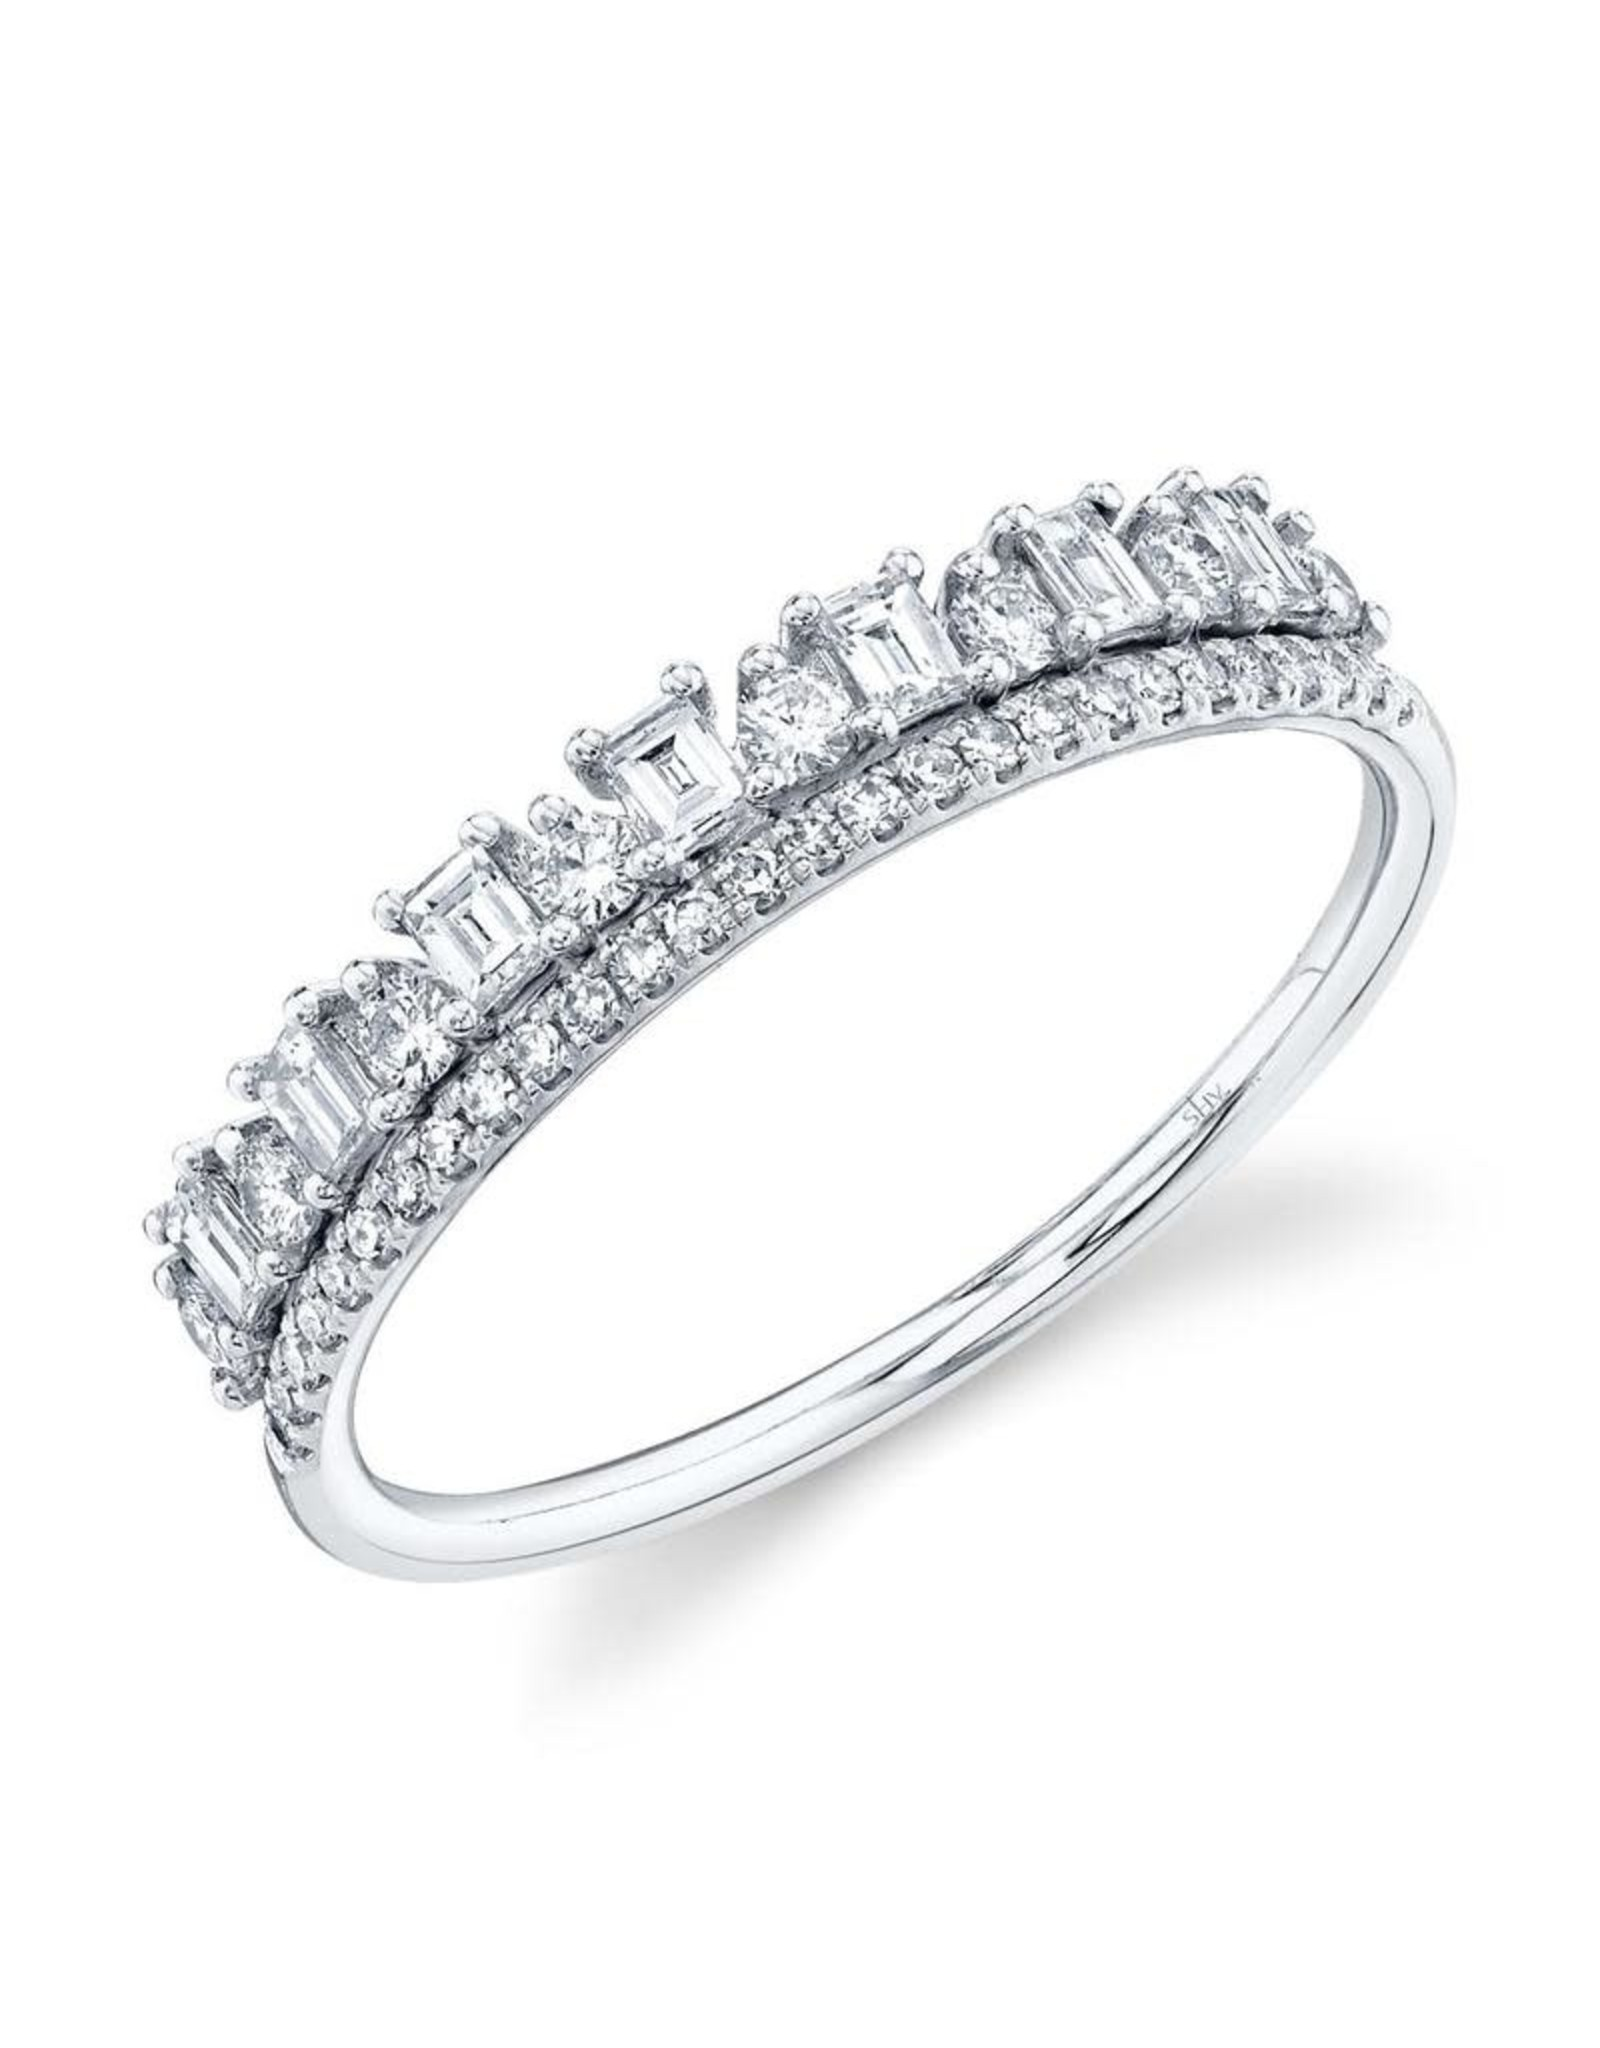 14K White Gold Double Stackable Ring with Baguettes and Round Diamonds, D: 0.44cts